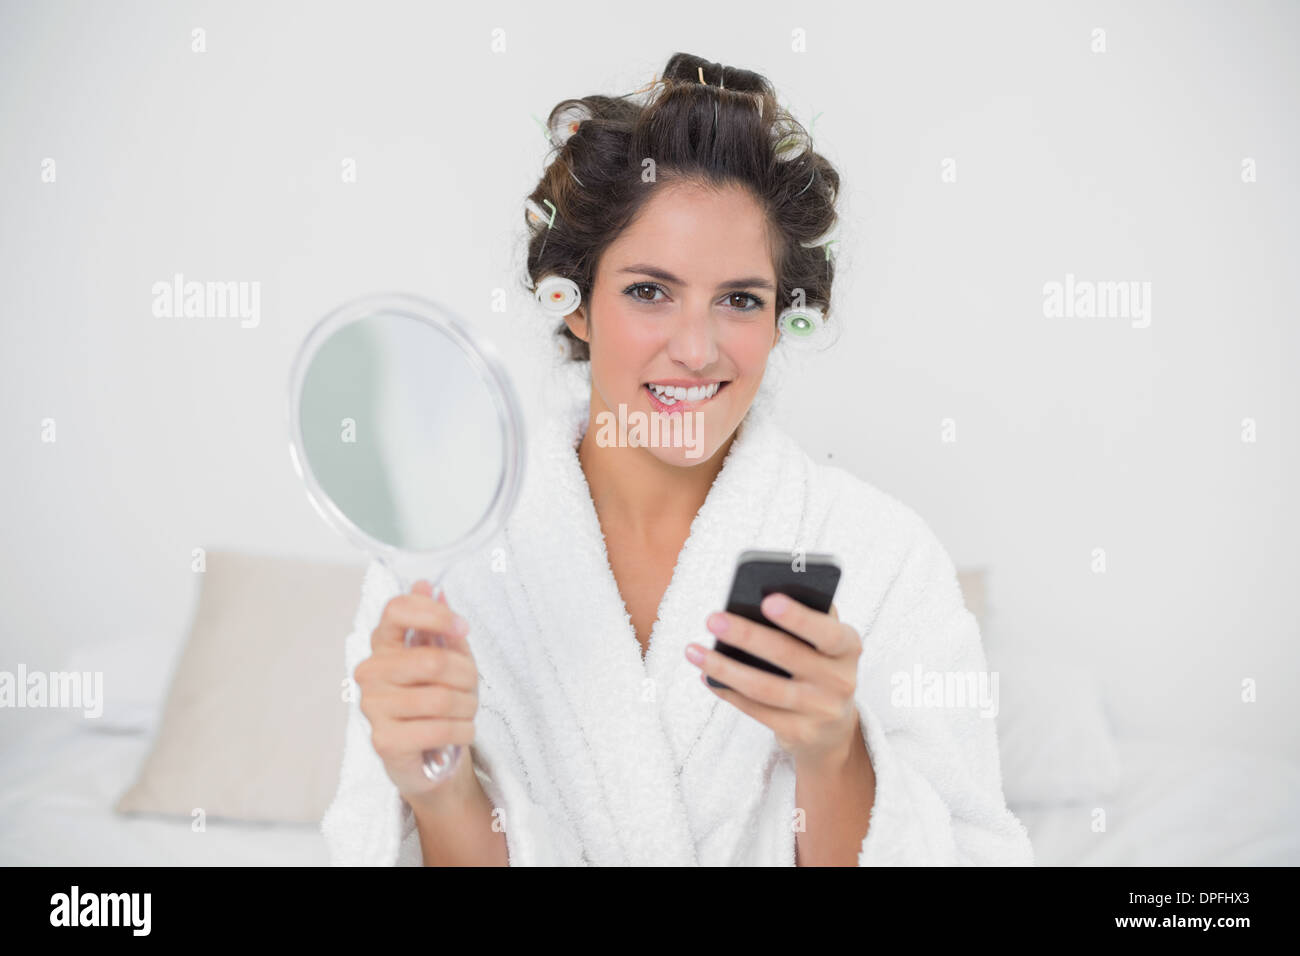 Unsure natural brunette holding mirror and smartphone - Stock Image